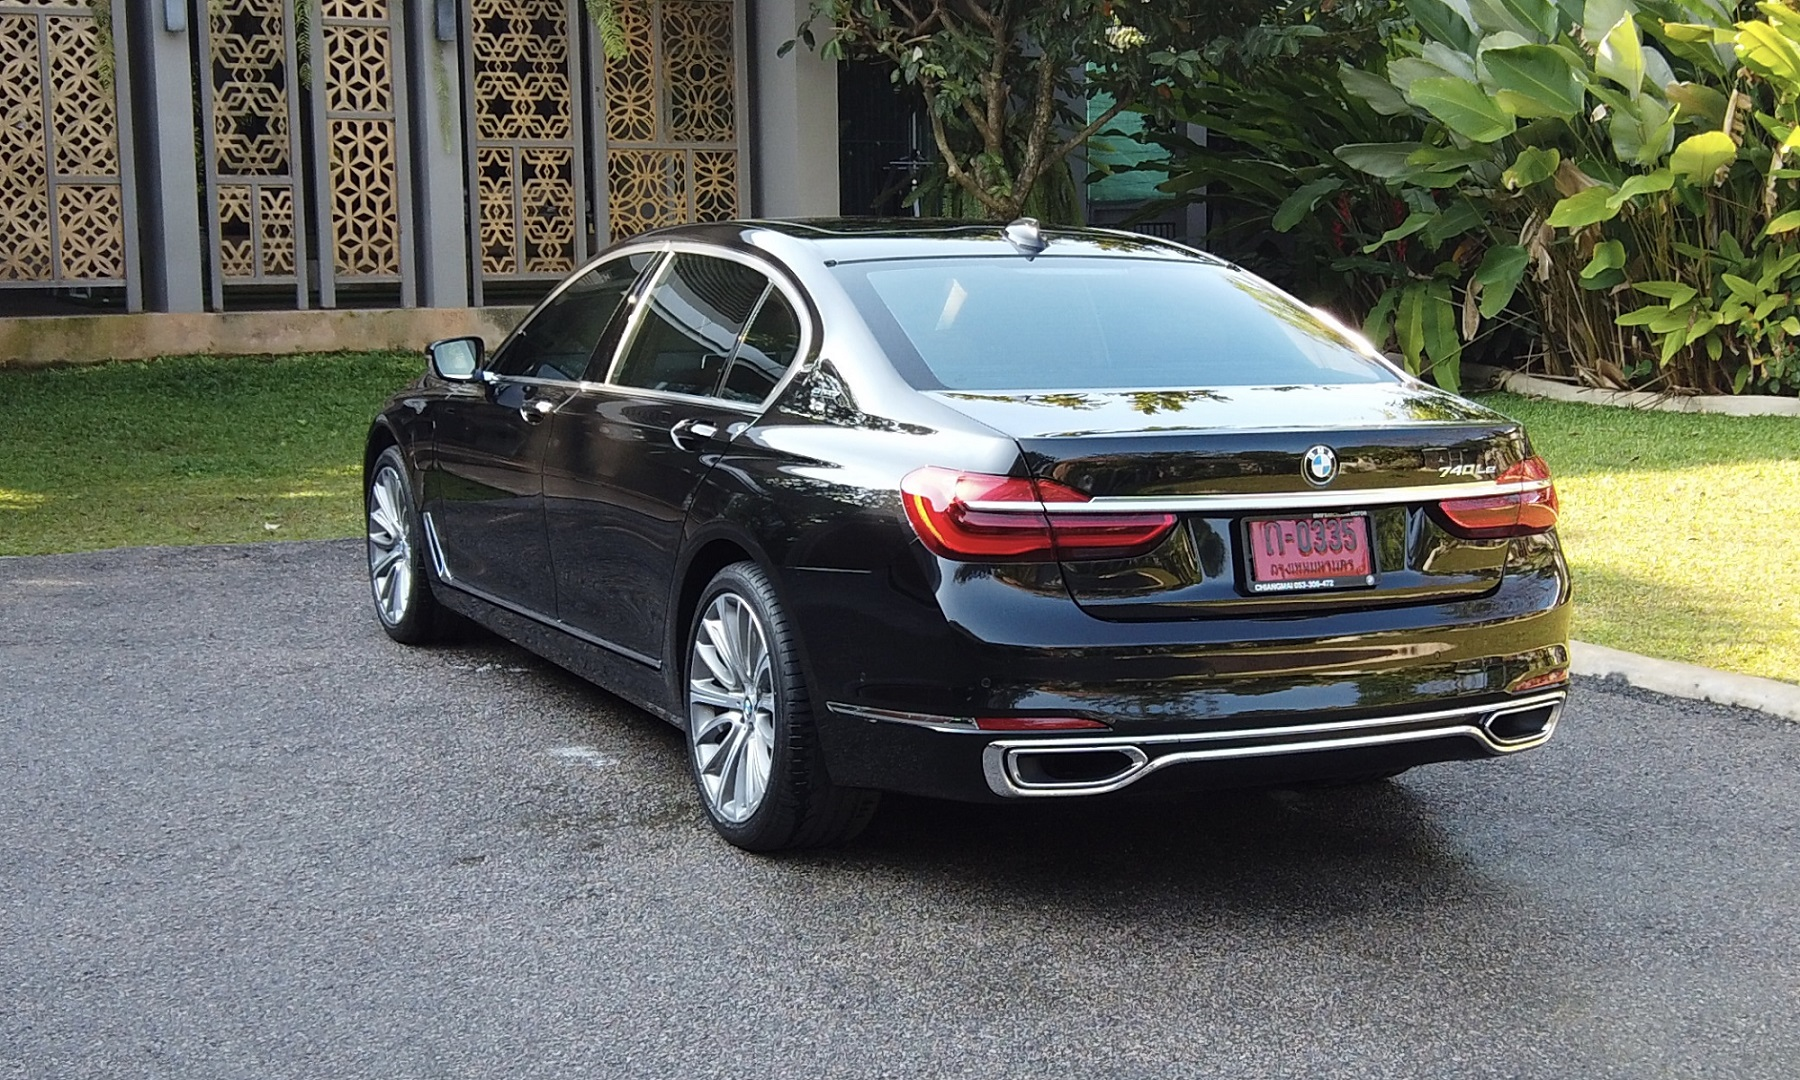 back view of bmw series 740LE luxurious car